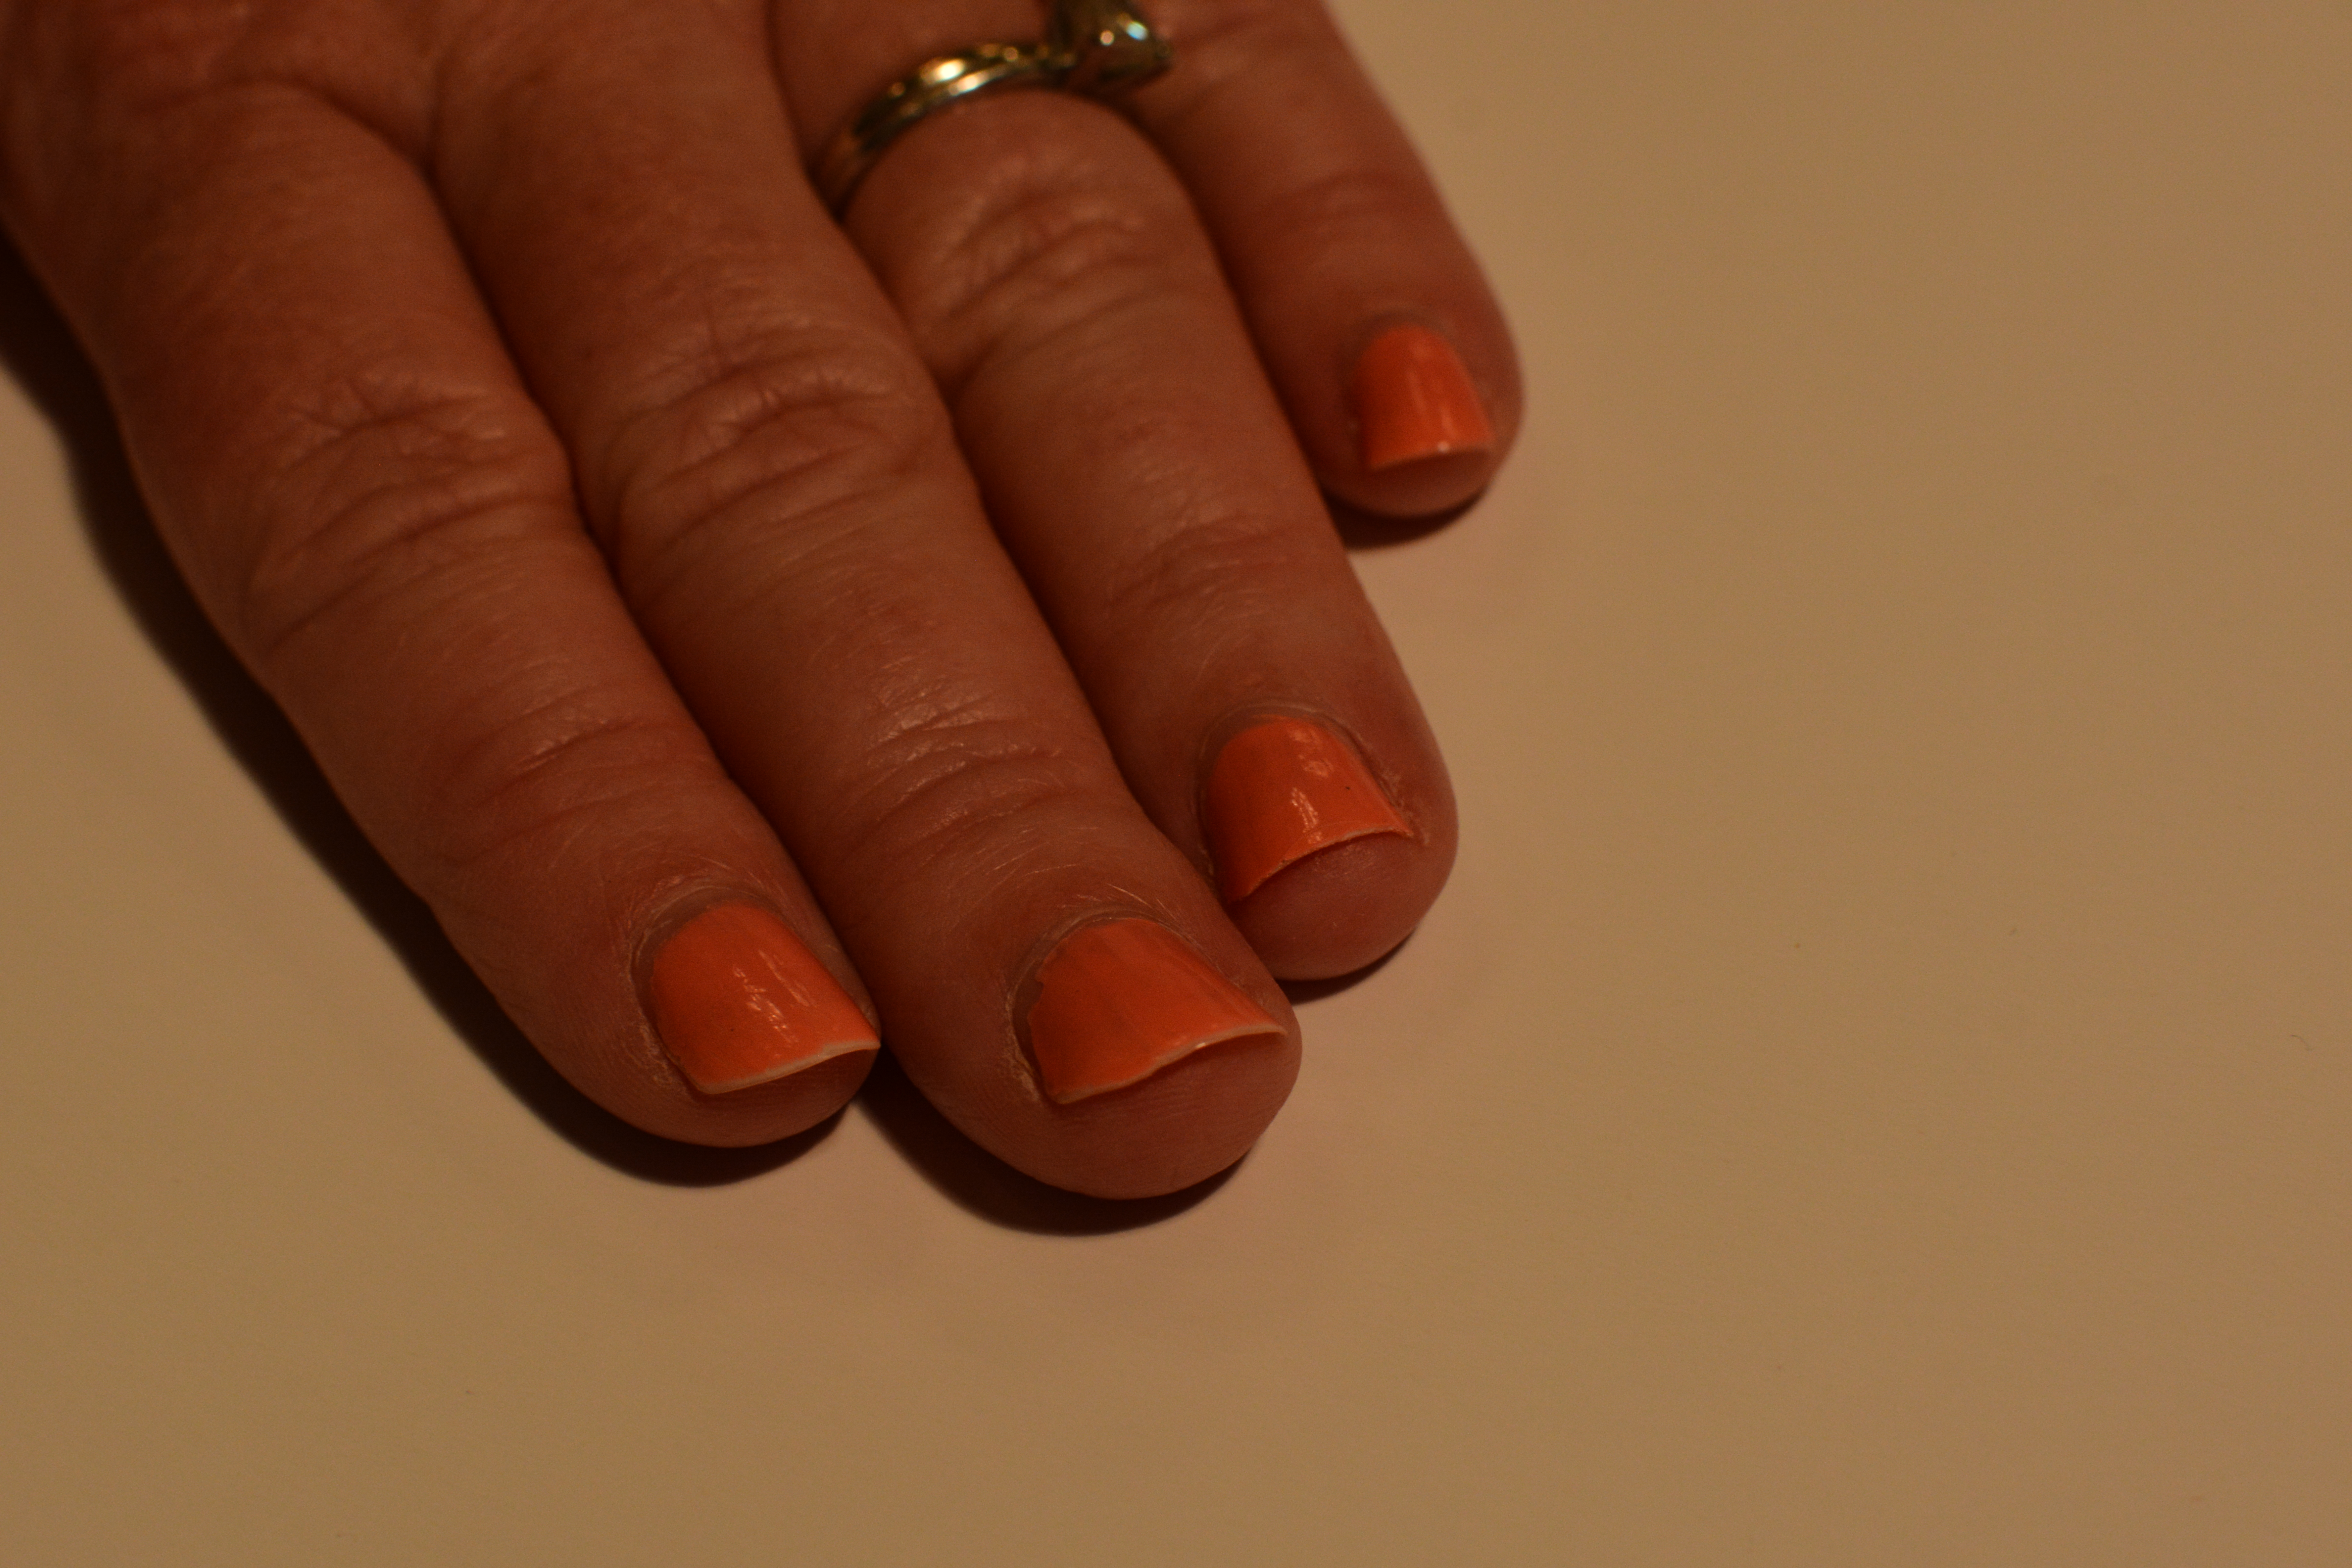 Sally Hansen Miracle Gel-REVIEW | Beauty Without a Boundary